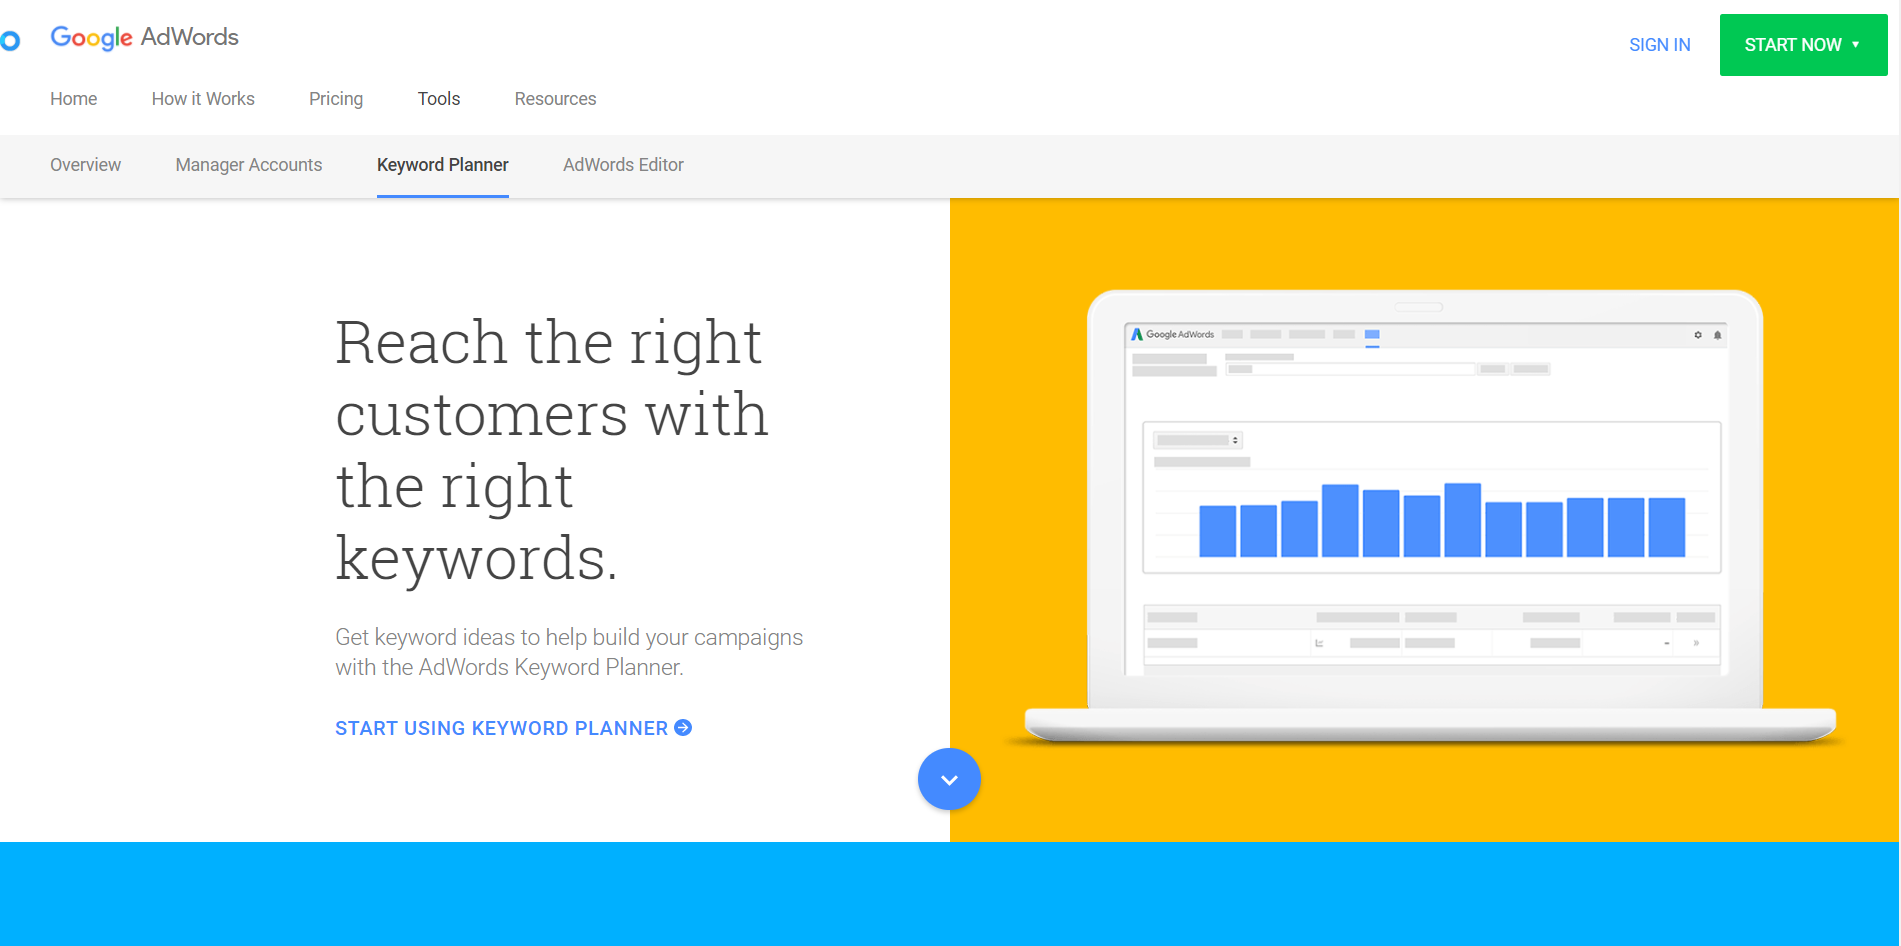 Google Keyword Planner is the go-to tools for keyword research.